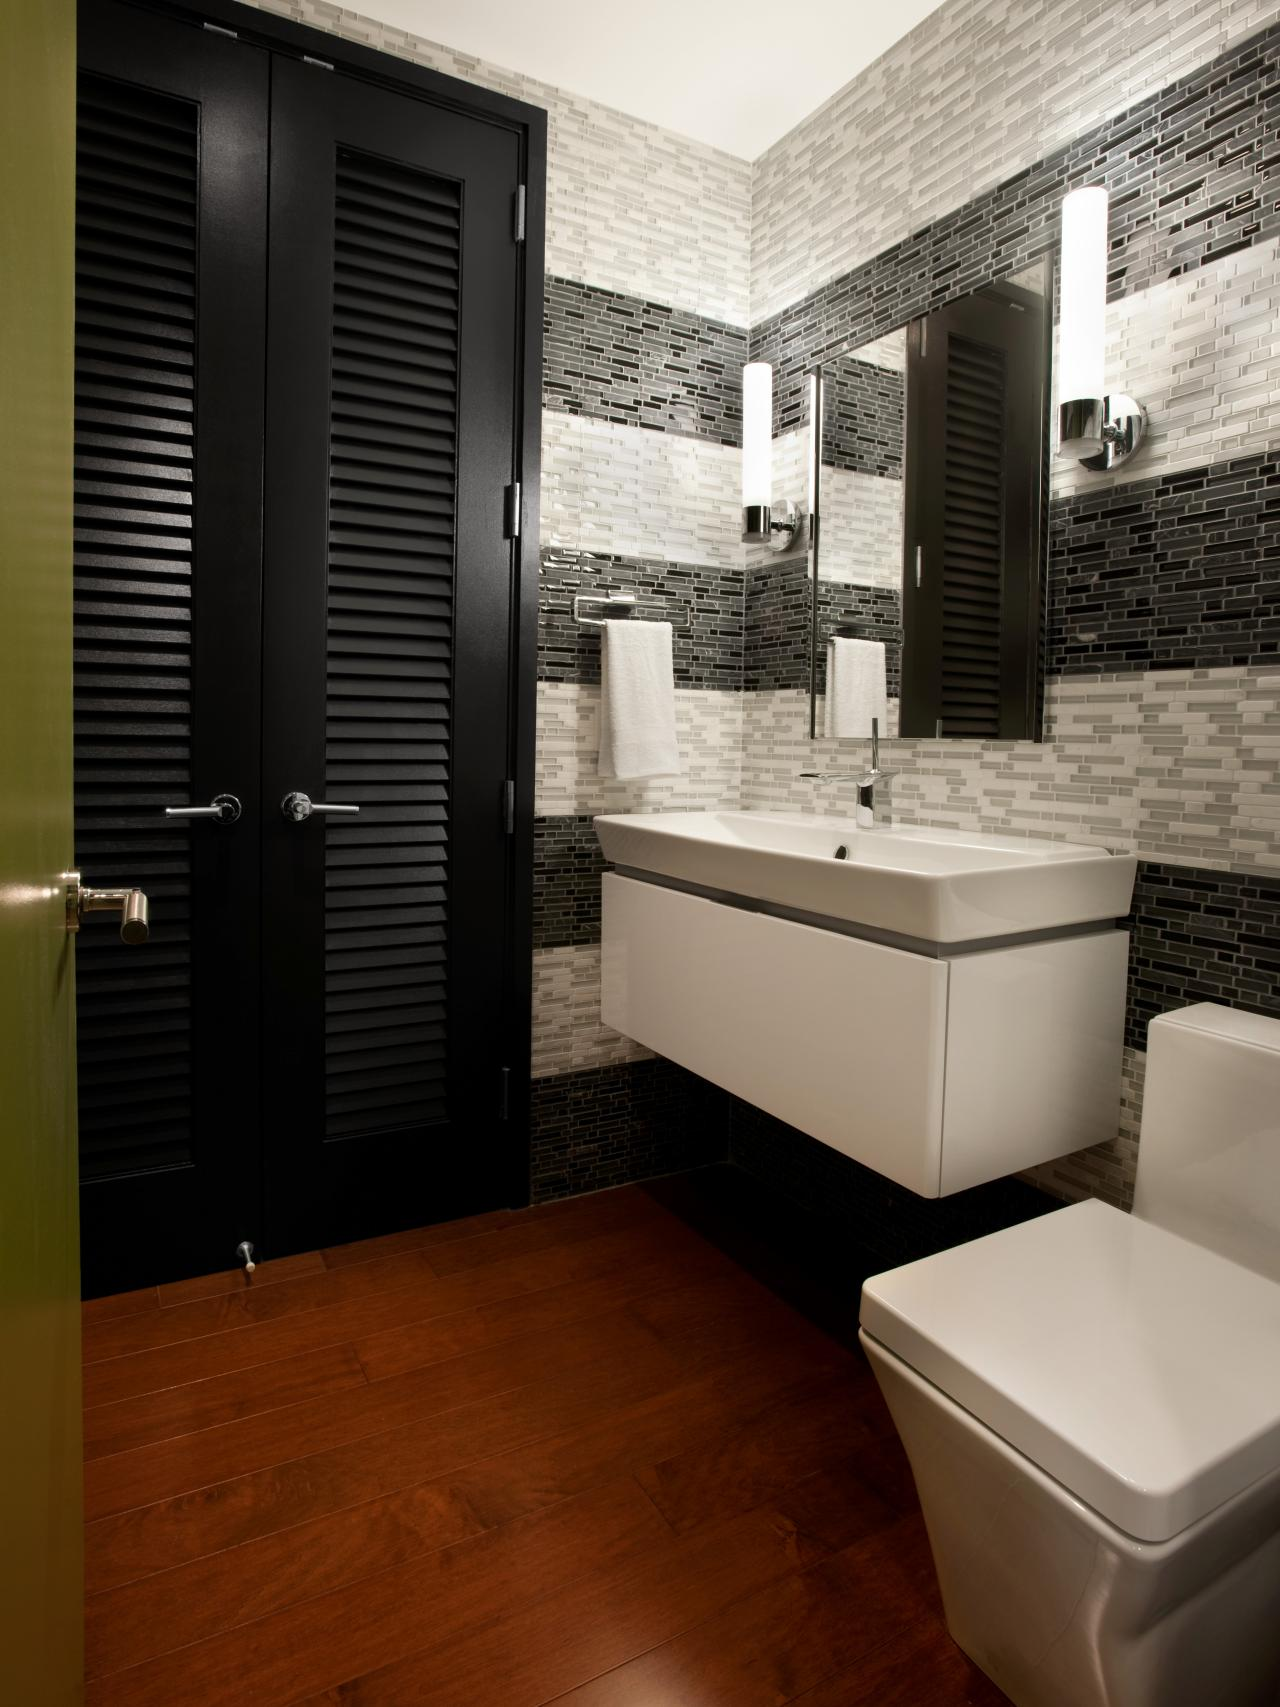 Modern bathroom design ideas pictures tips from hgtv hgtv for Modern chic bathroom designs